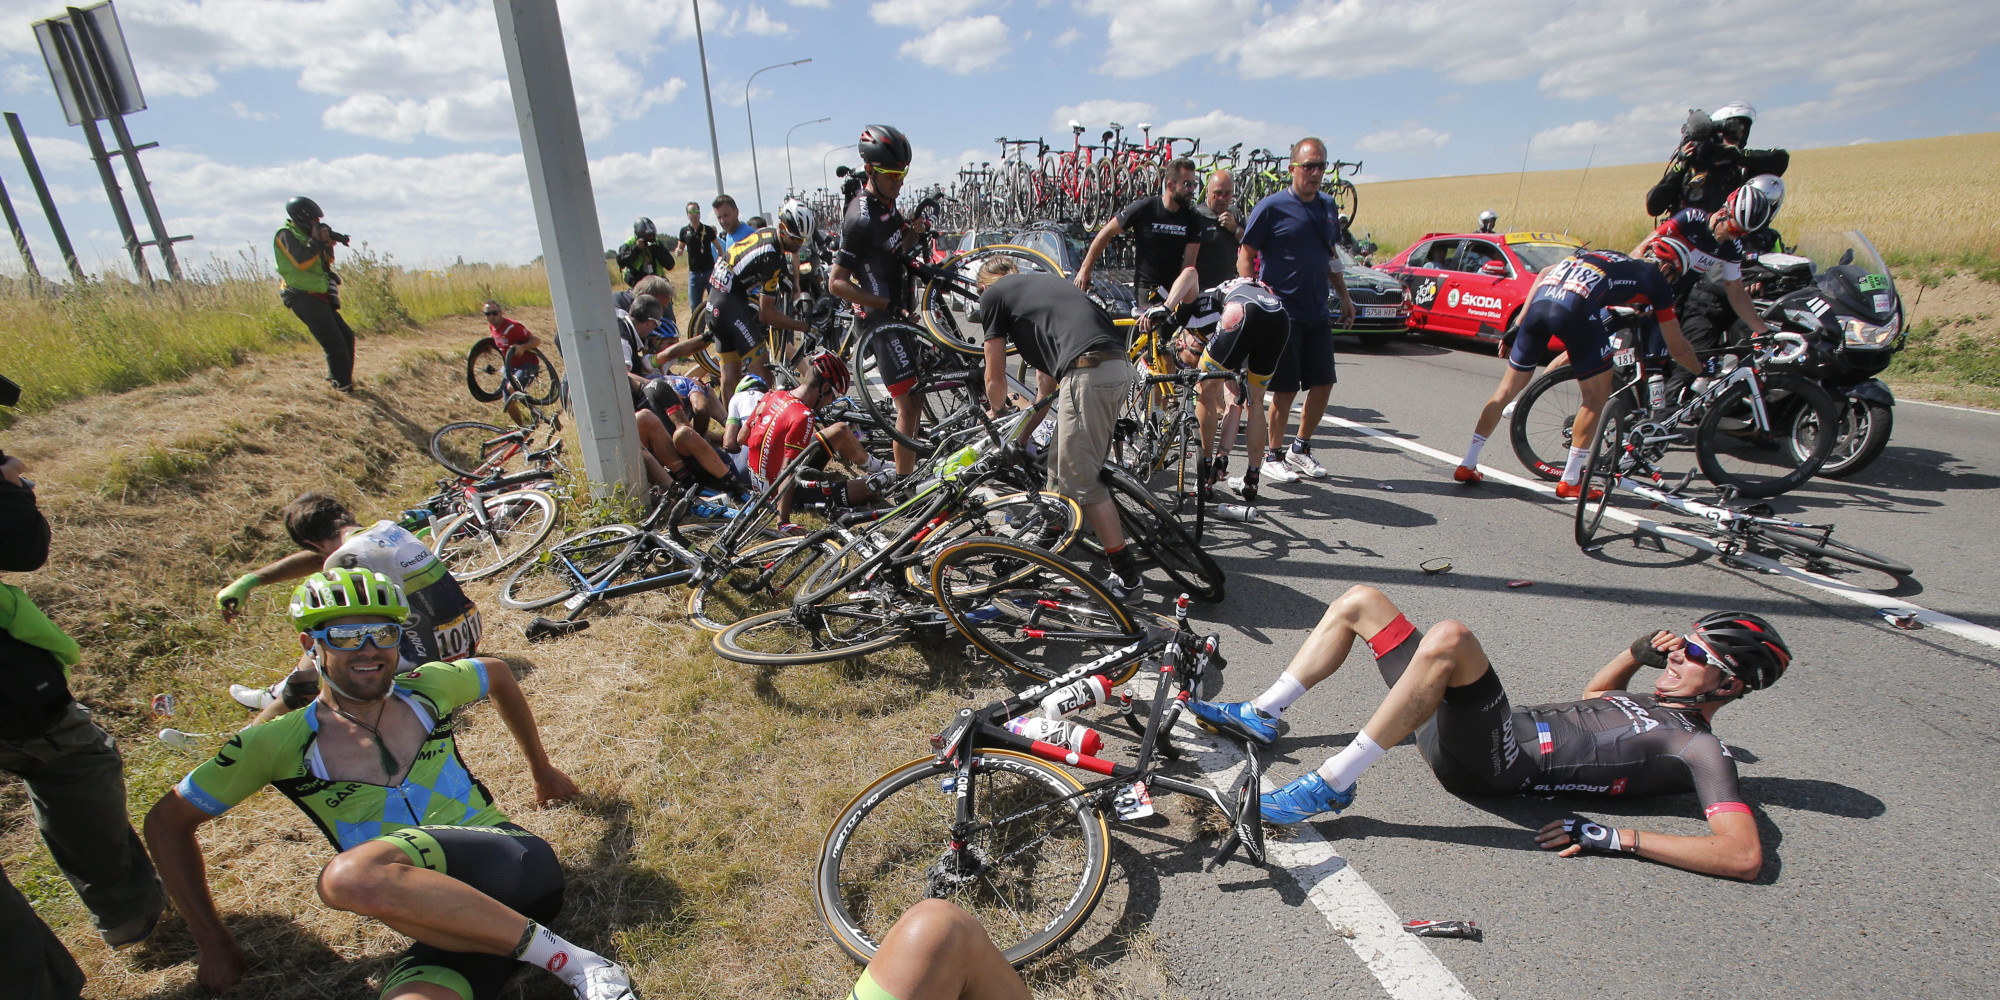 horrible tour de france crash brings down 20 riders briefly stops race huffpost. Black Bedroom Furniture Sets. Home Design Ideas